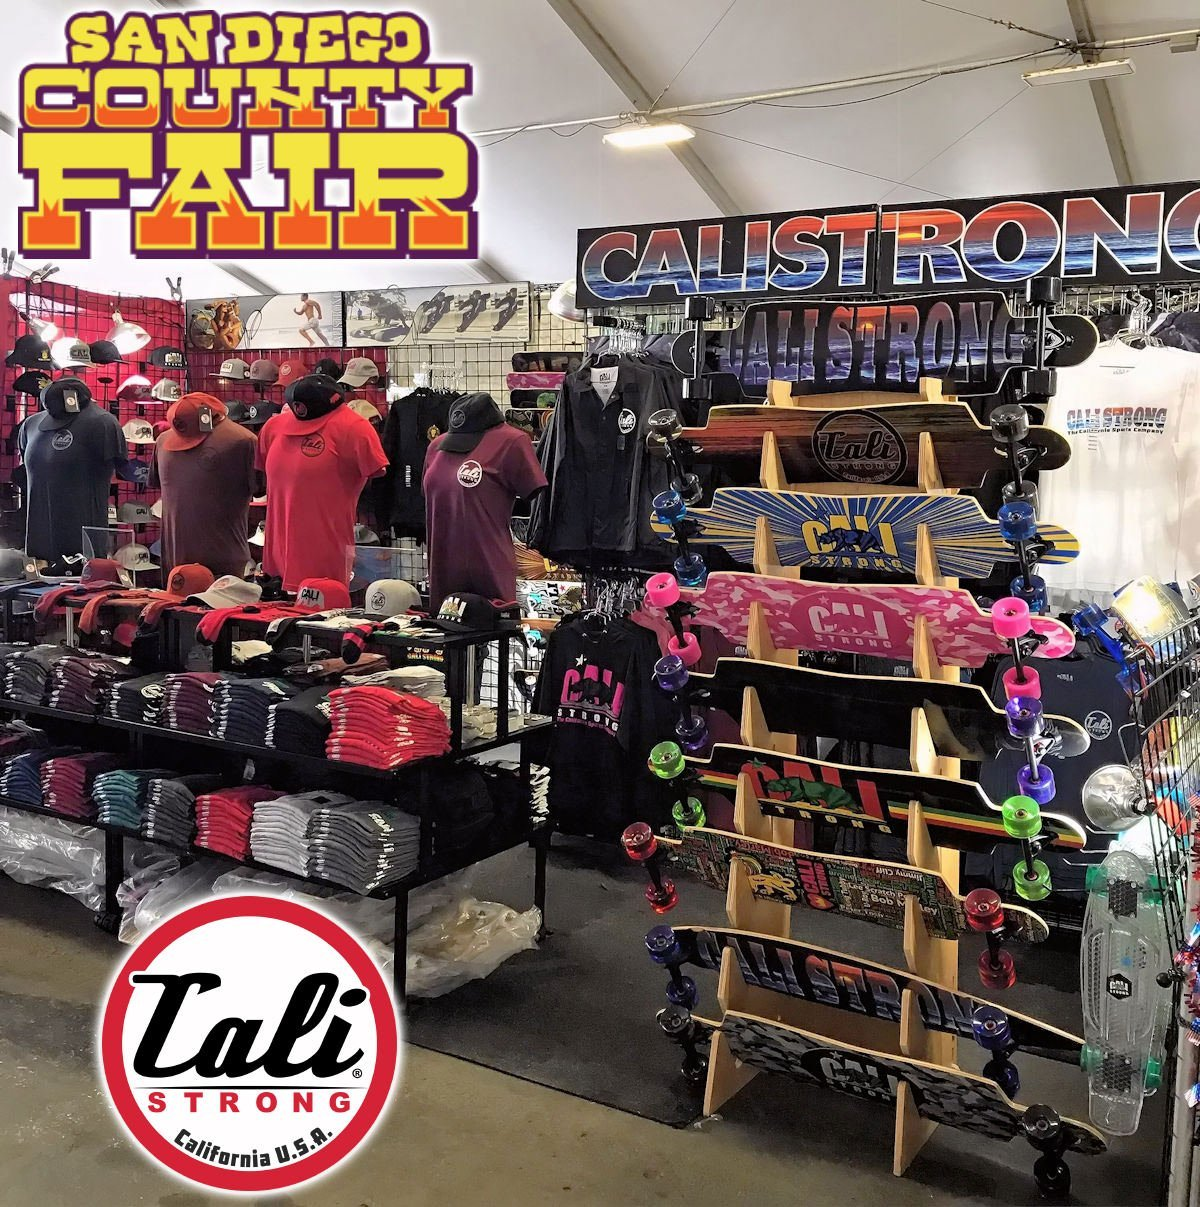 San Diego County Fair Seaside Tent Booth #3313